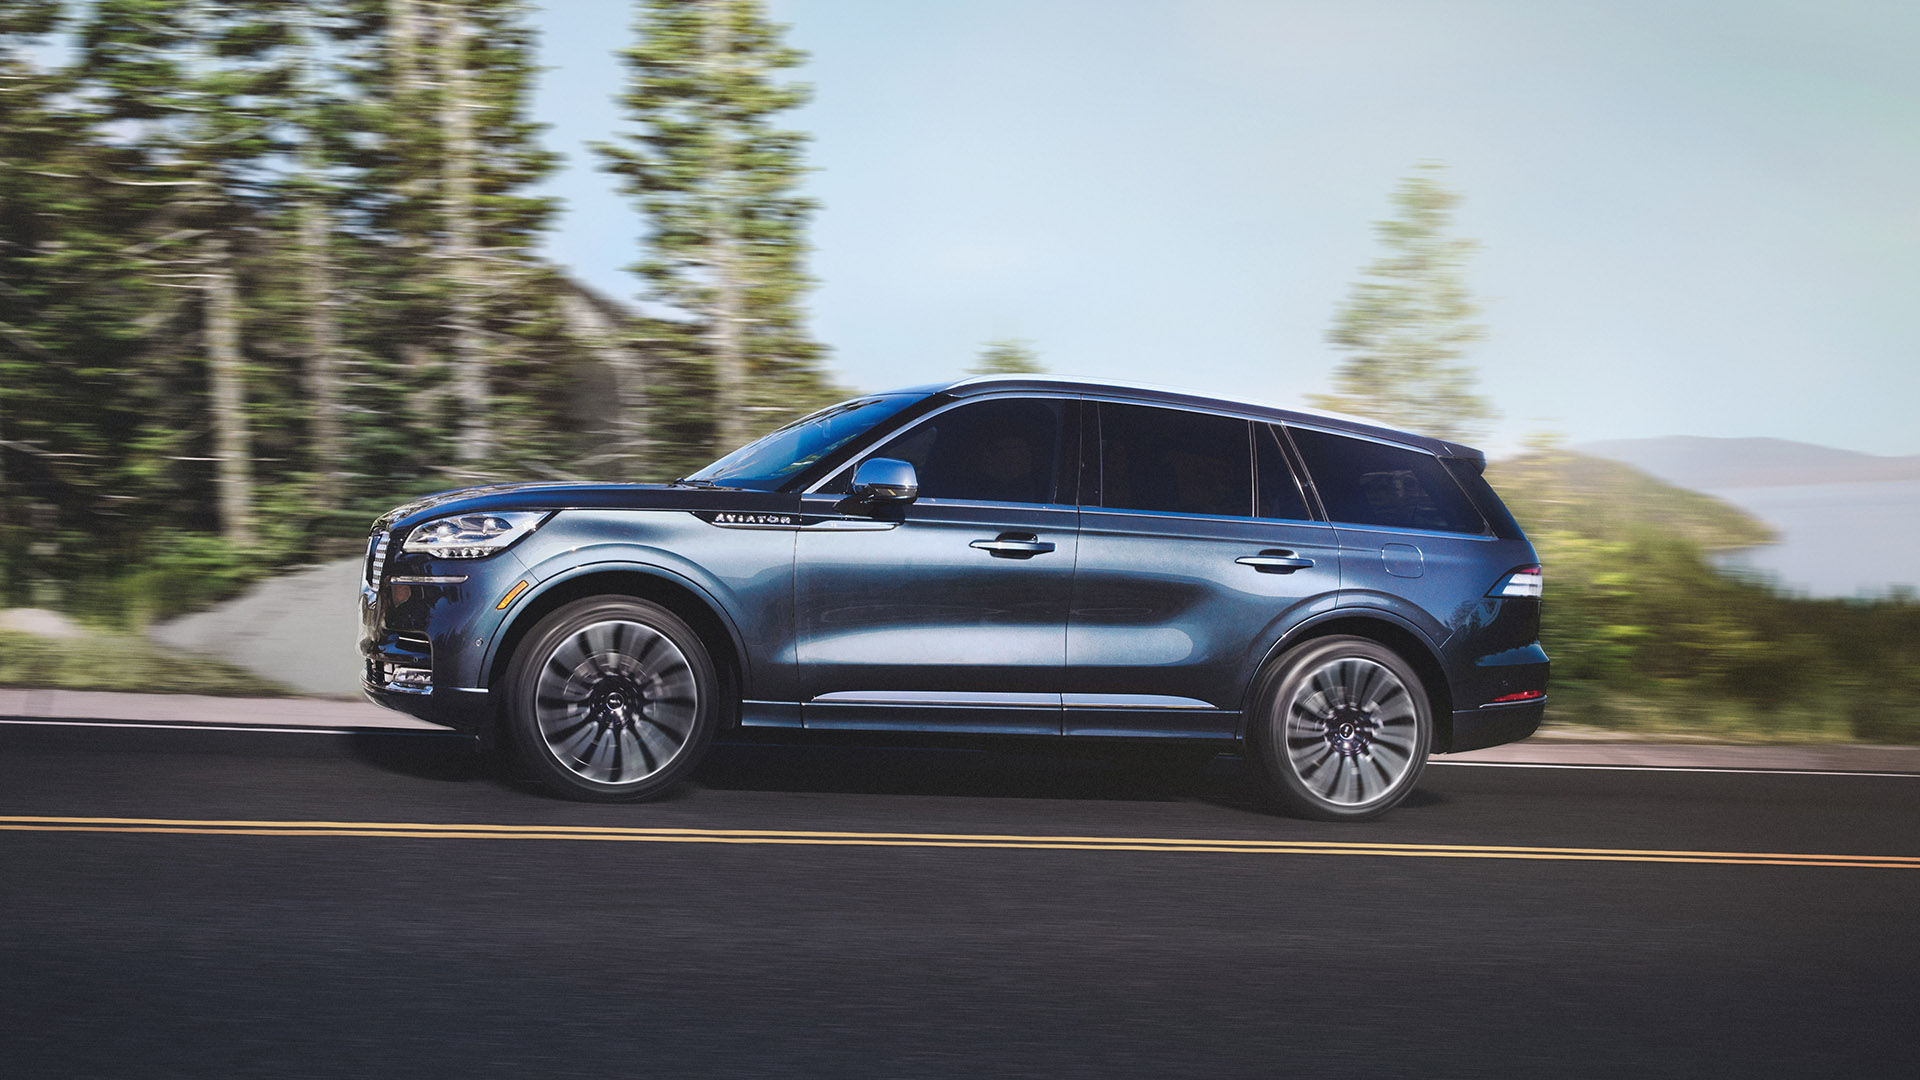 The 450 Hp 2020 Lincoln Aviator Suv Is A Classic Vision Of Modern